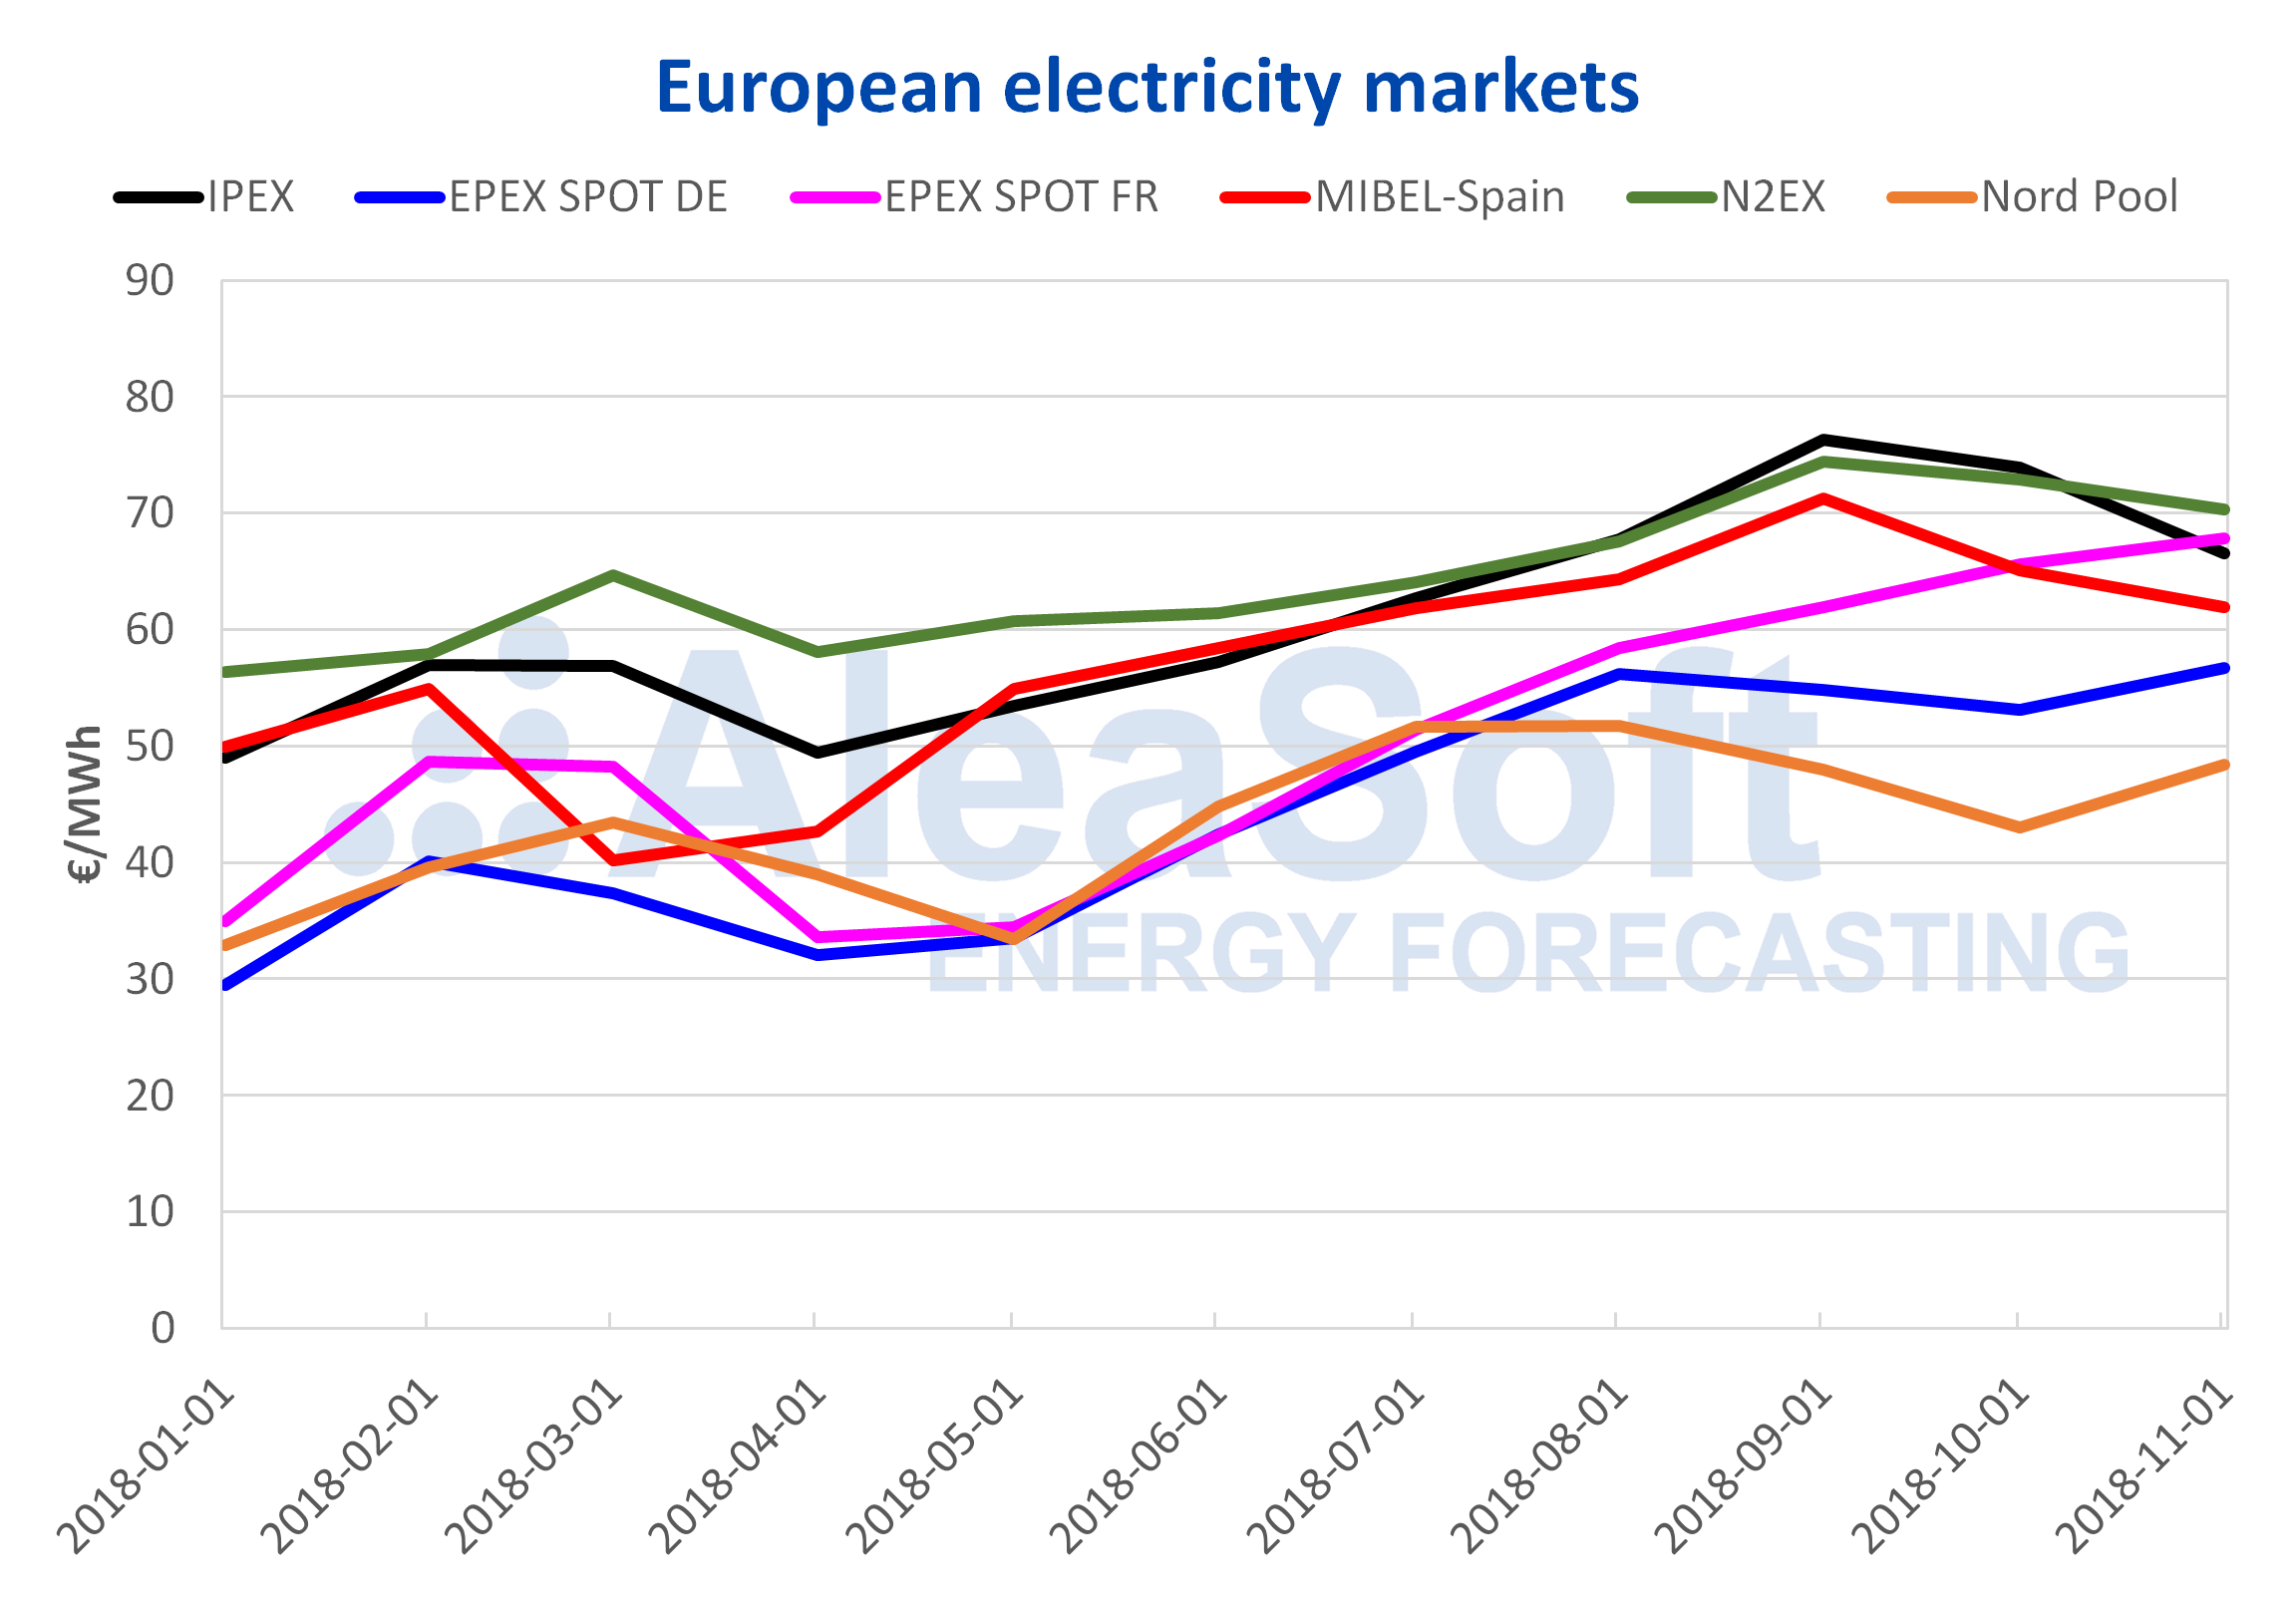 AleaSoft - European electricity markets price